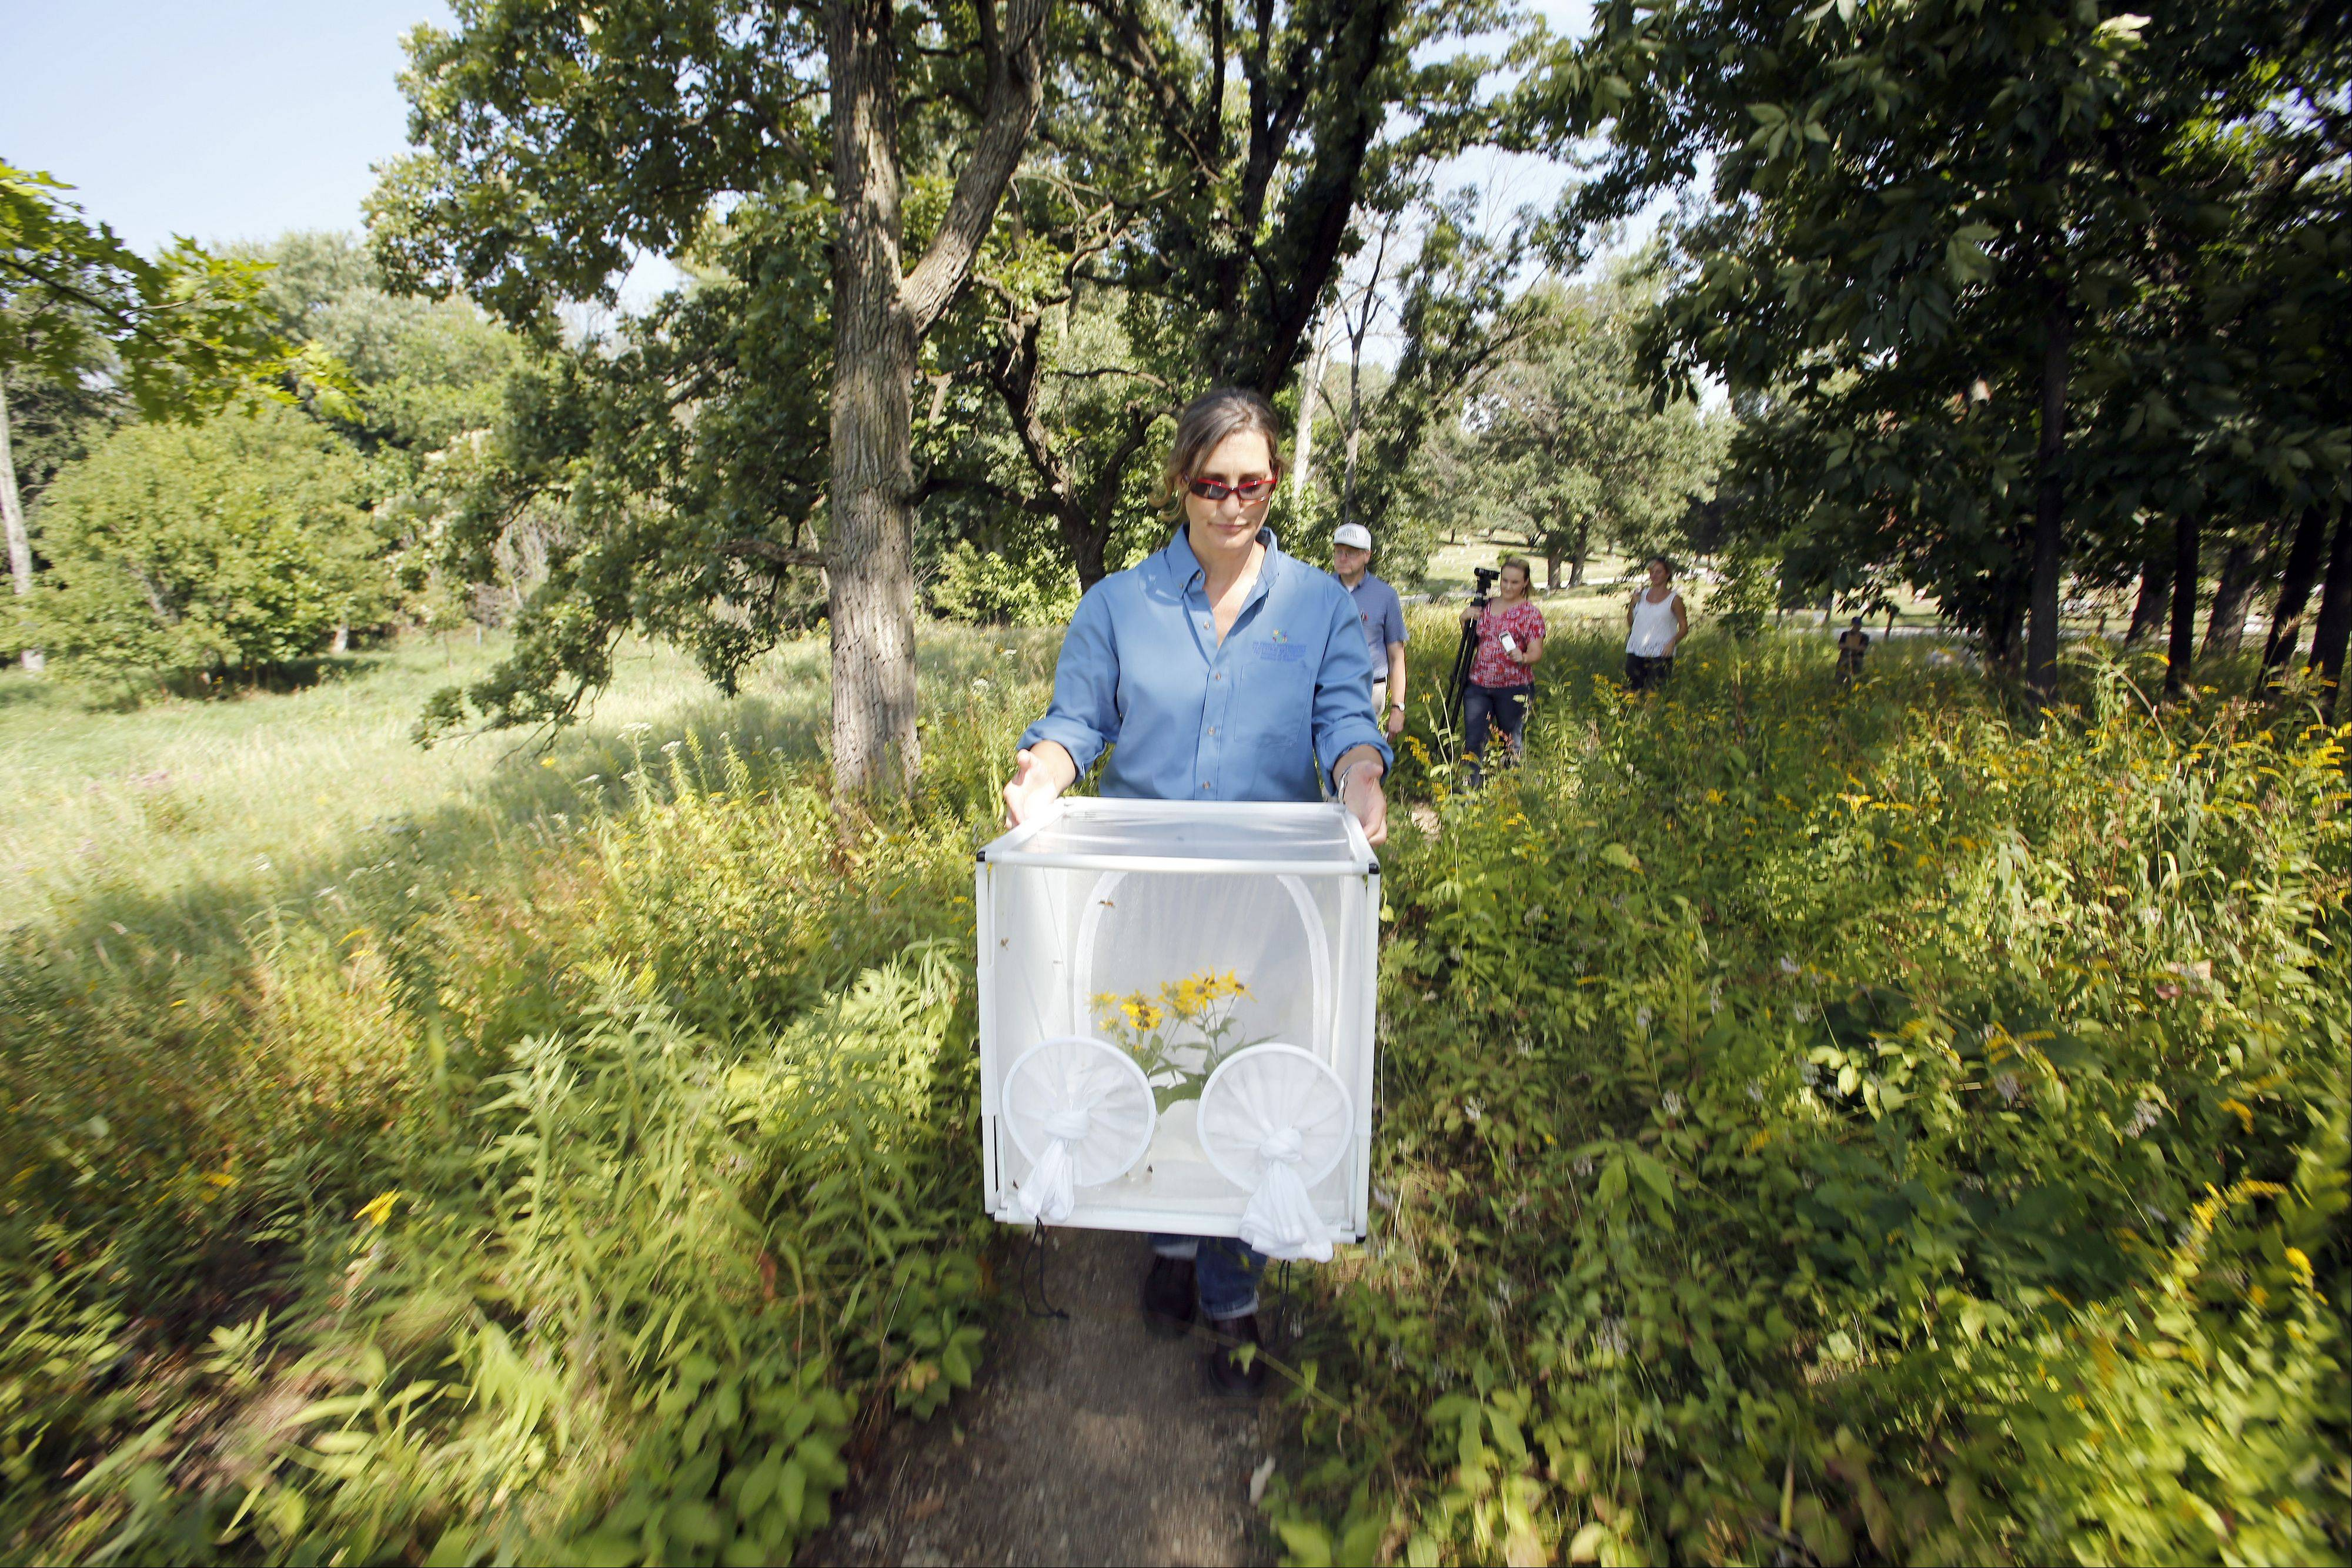 Karen Kramer Wilson, living invertebrate specialist at the Peggy Notebaert Nature Museum in Chicago, carries swamp metalmark butterflies to their new home Thursday at the Bluff City Fen in Elgin.